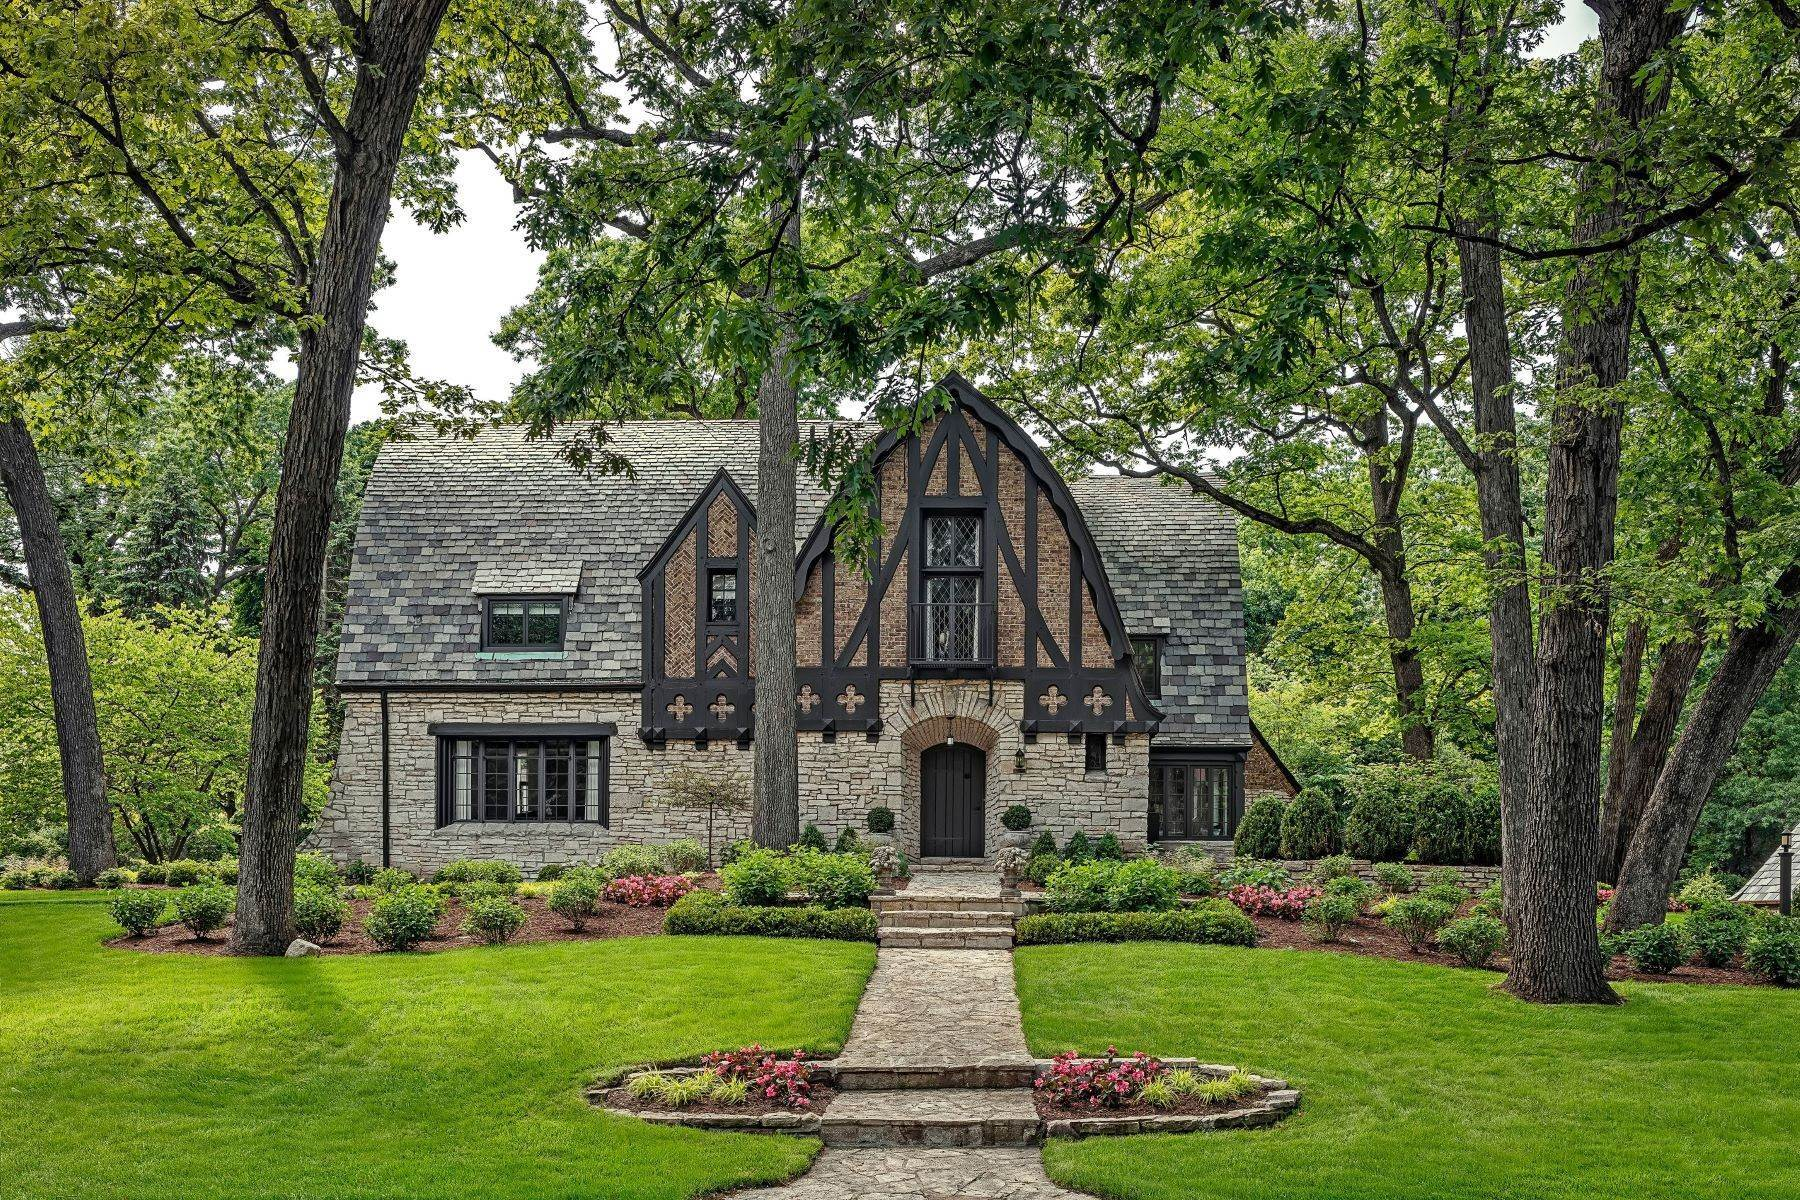 Single Family Homes for Sale at Tudor Revival Masterpiece 46 S County Line Road Hinsdale, Illinois 60521 United States